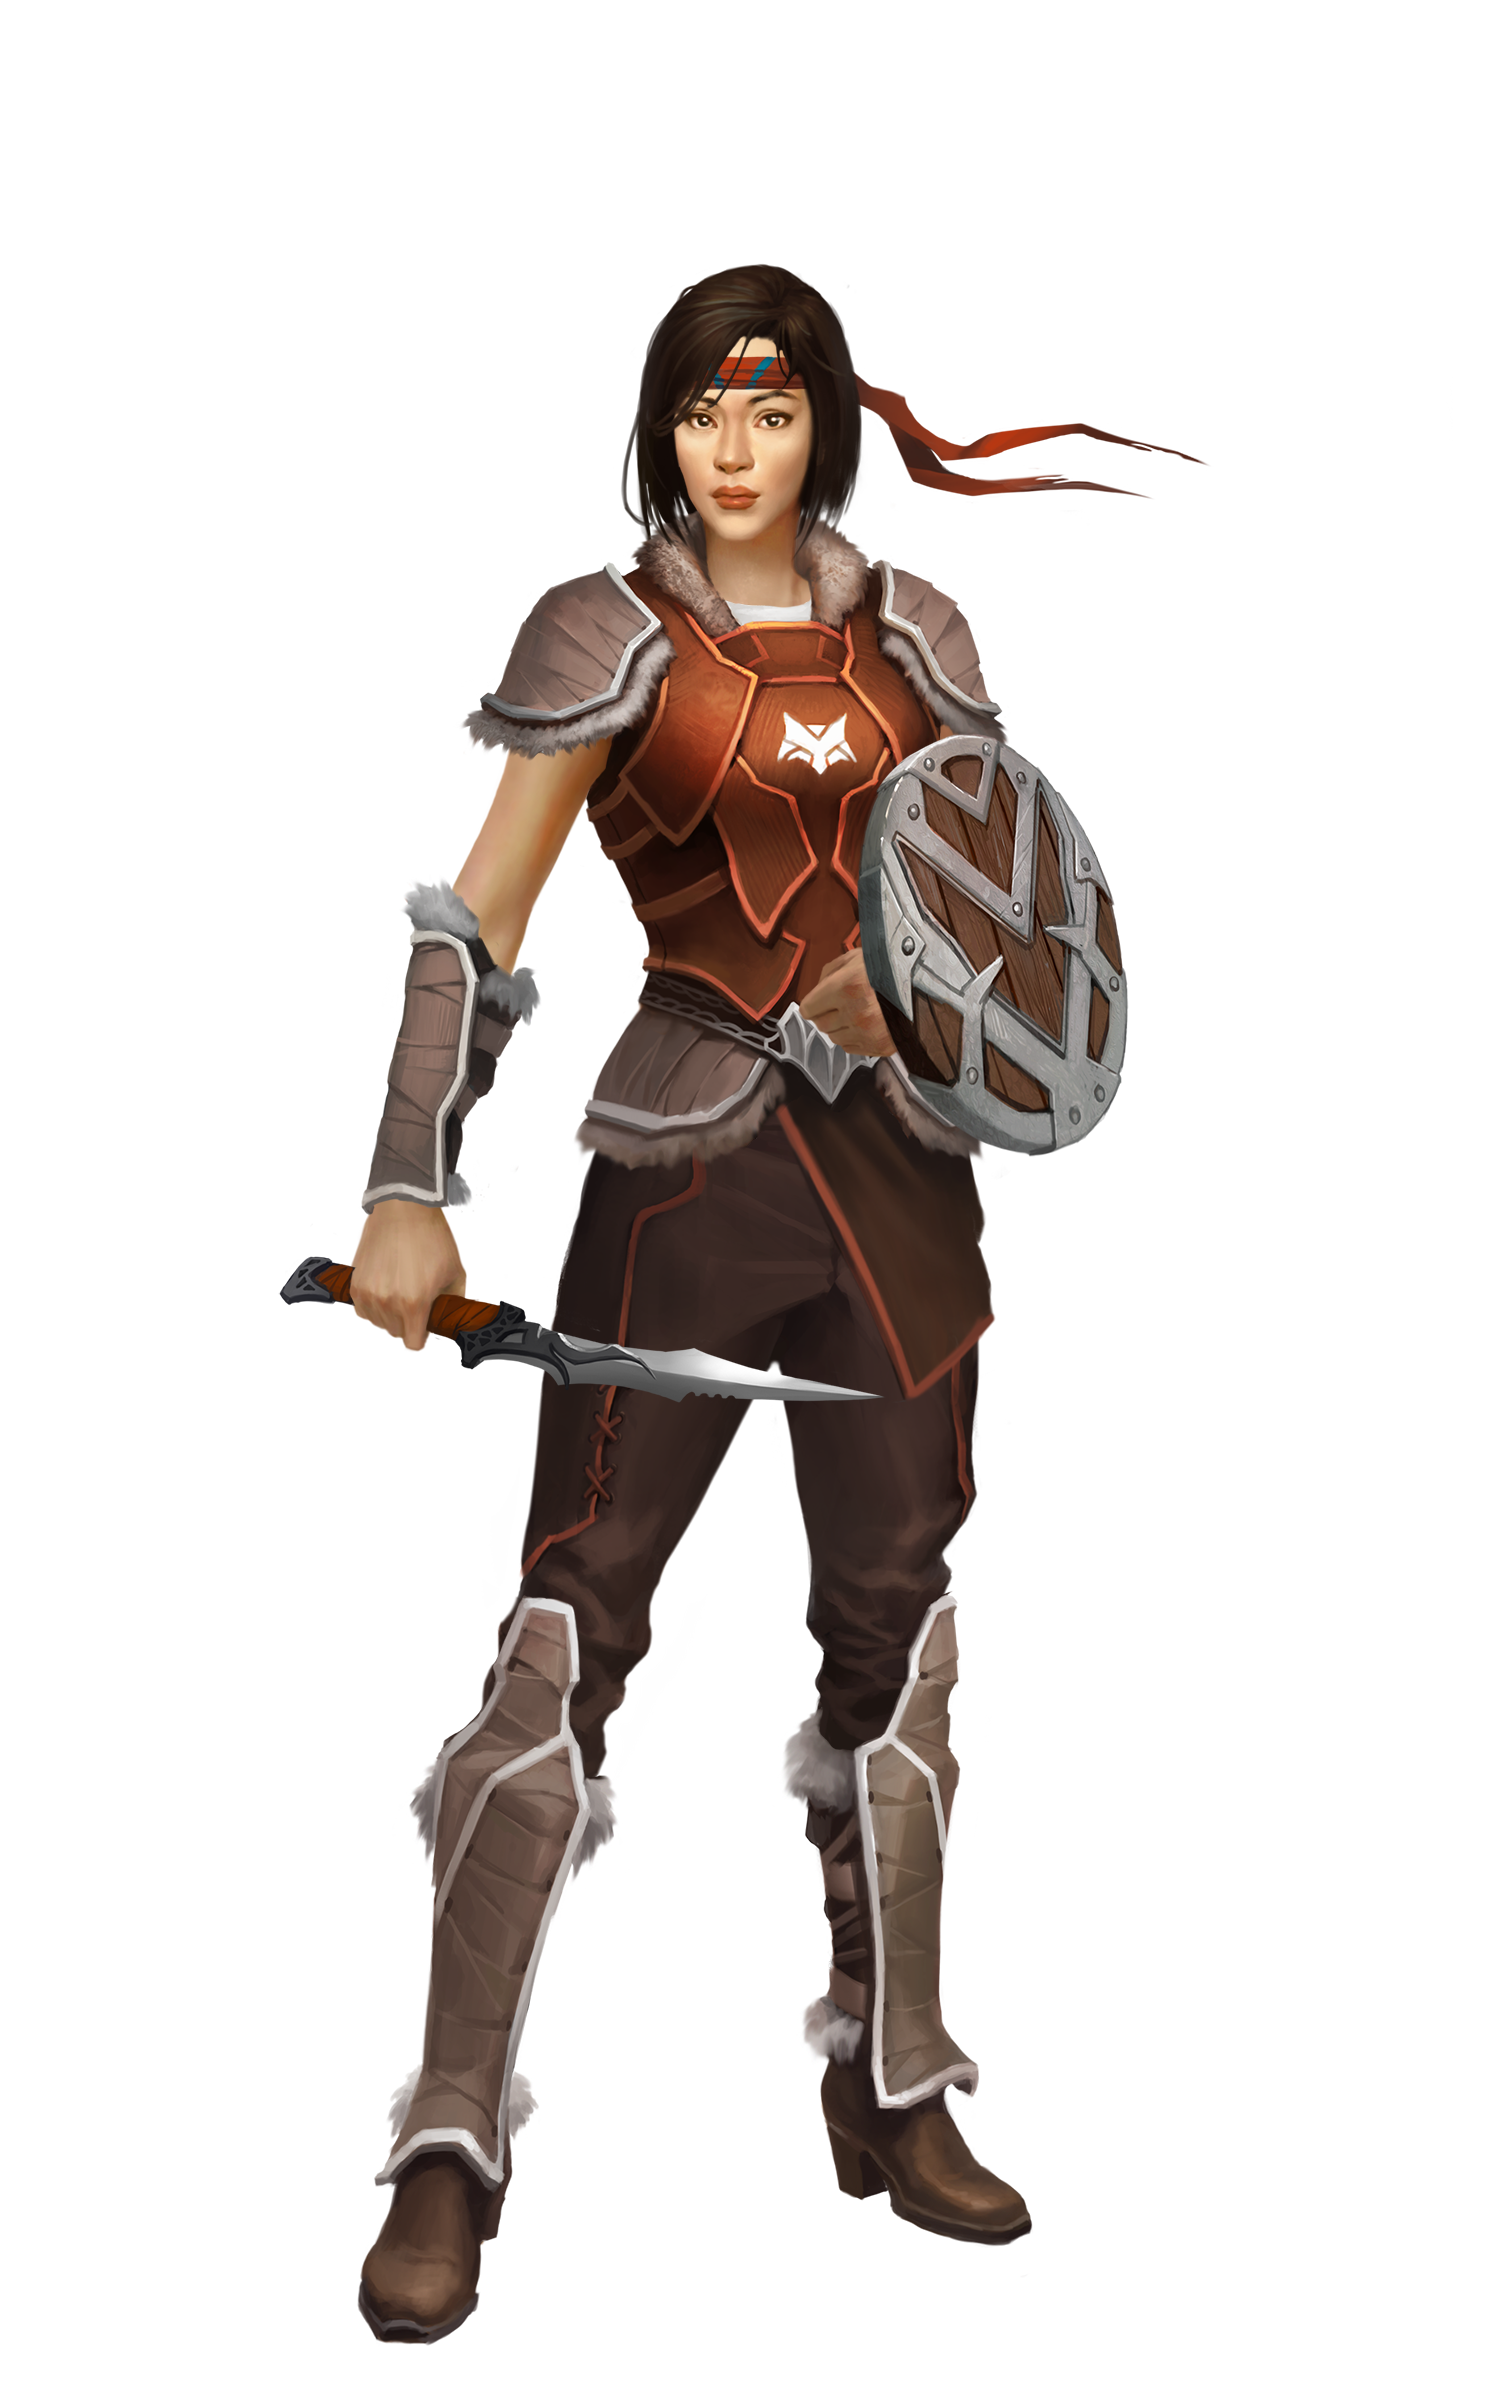 Warrior_Female_Fox_Asian.png